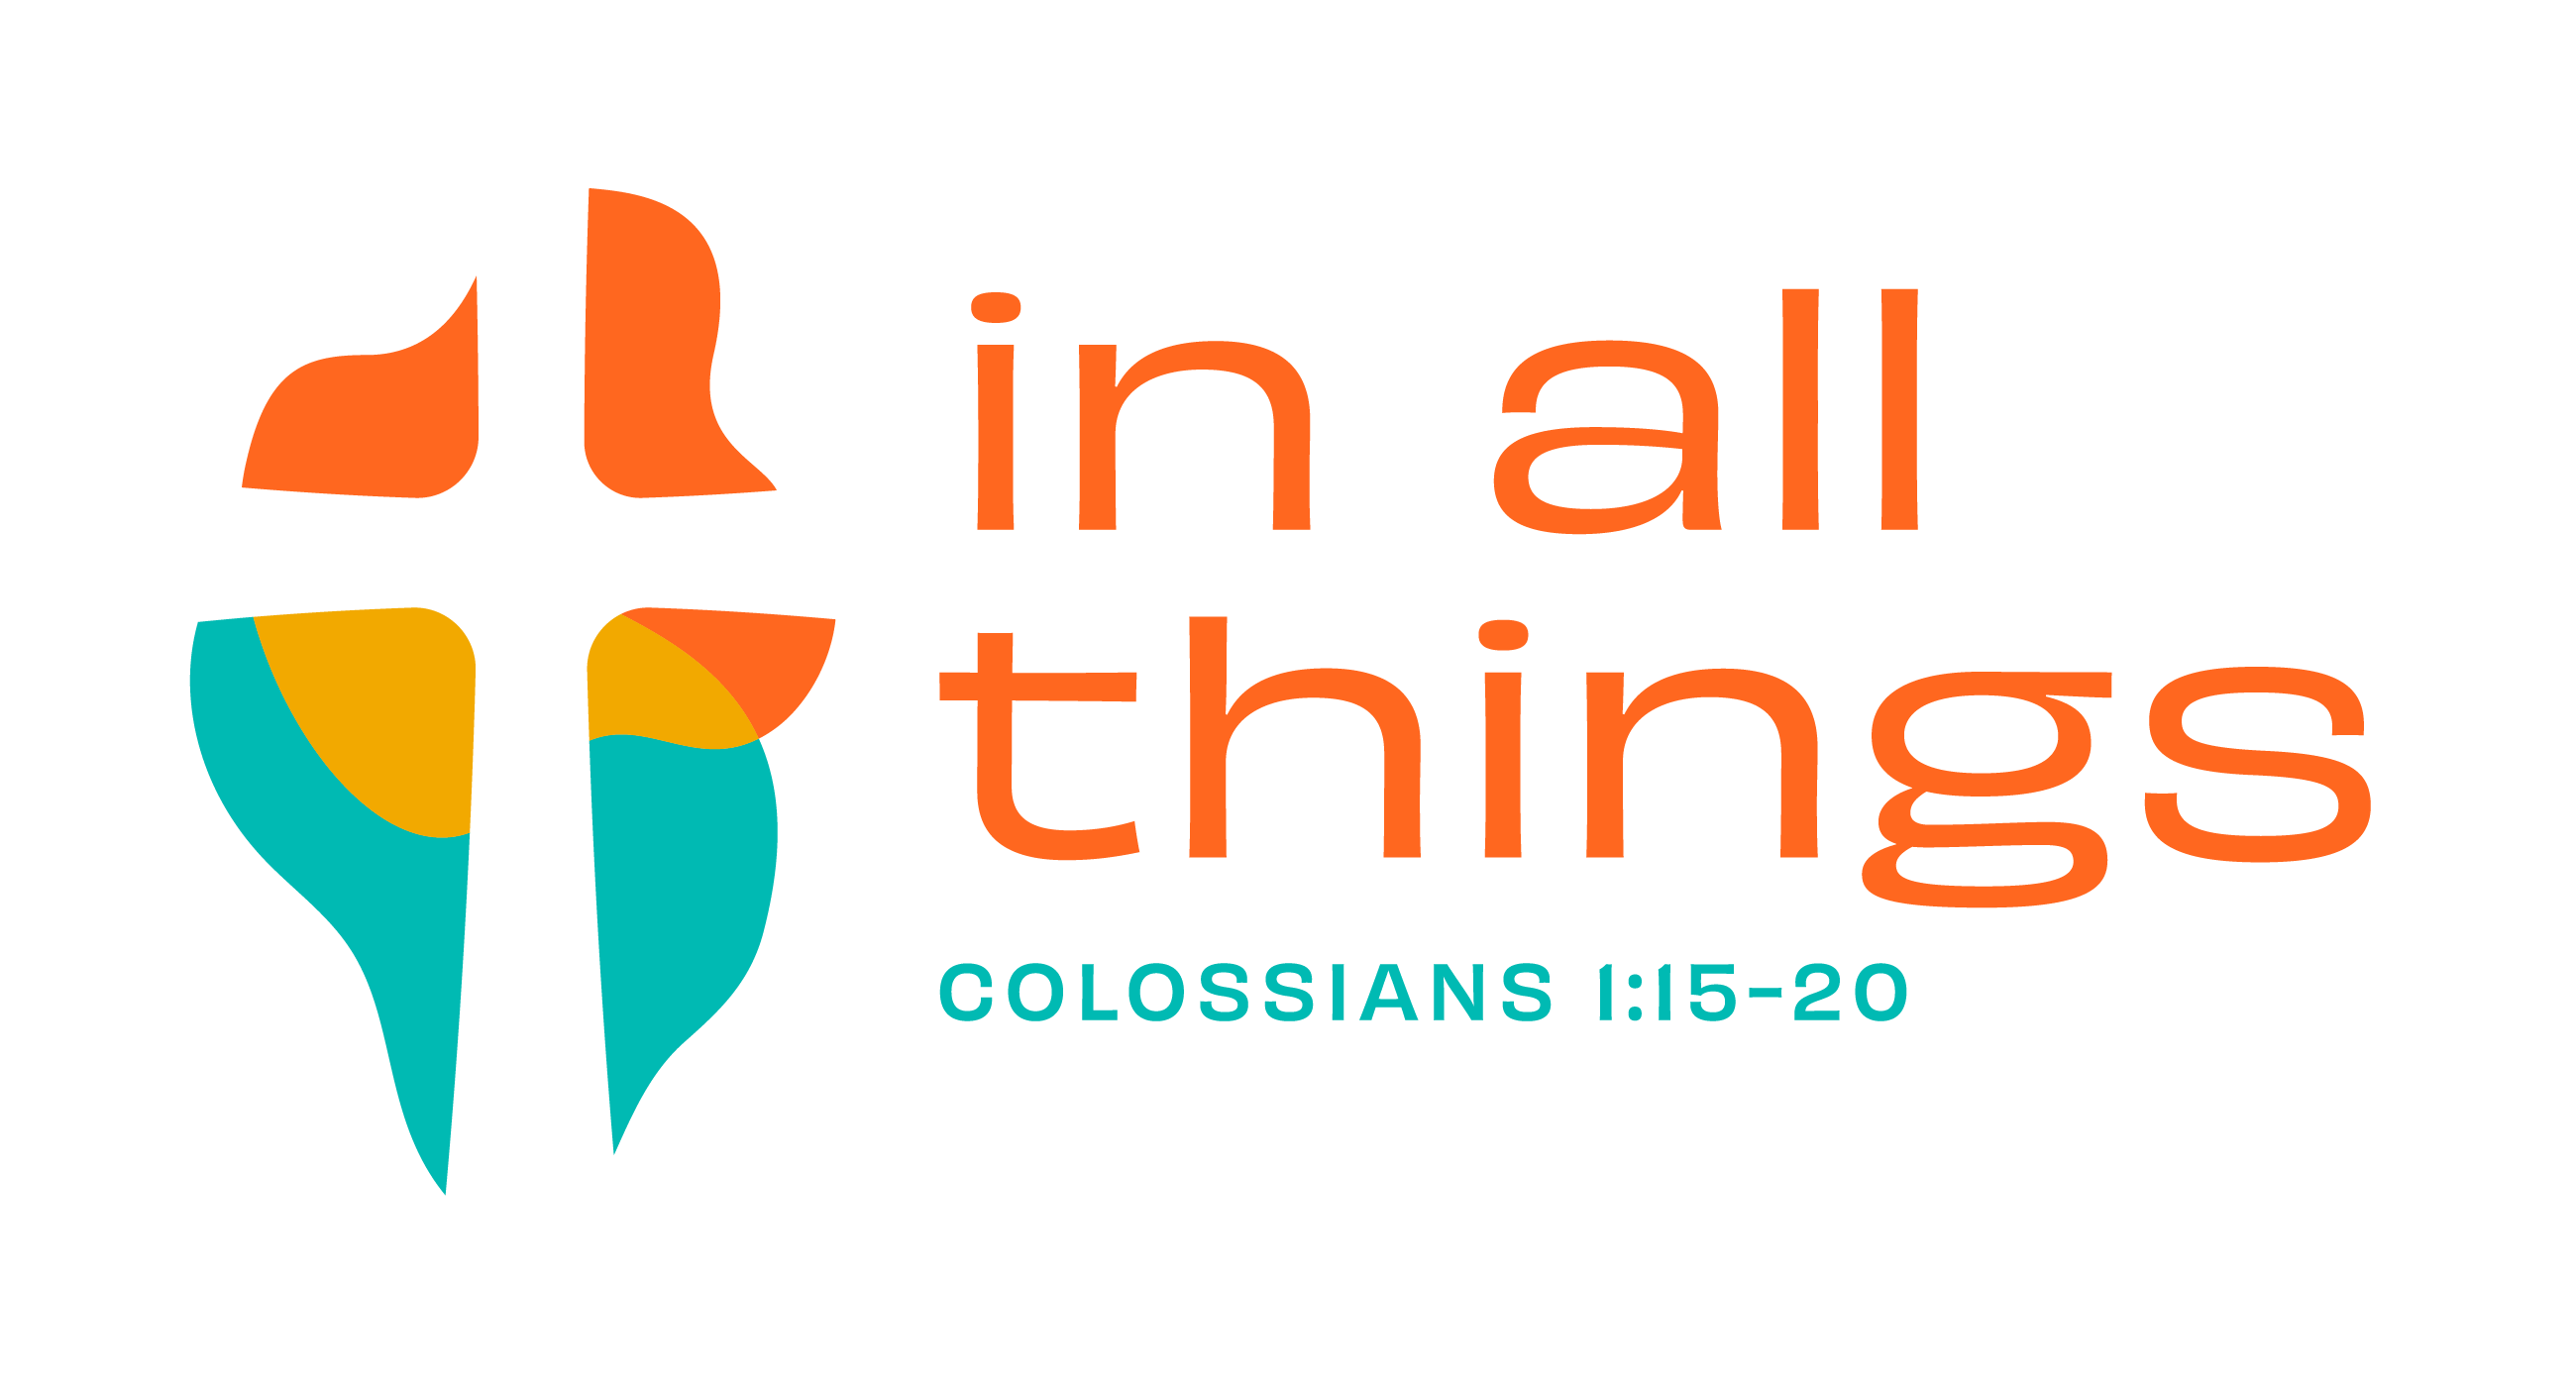 2021-2022 Yearly Theme Announced! | LuthEd